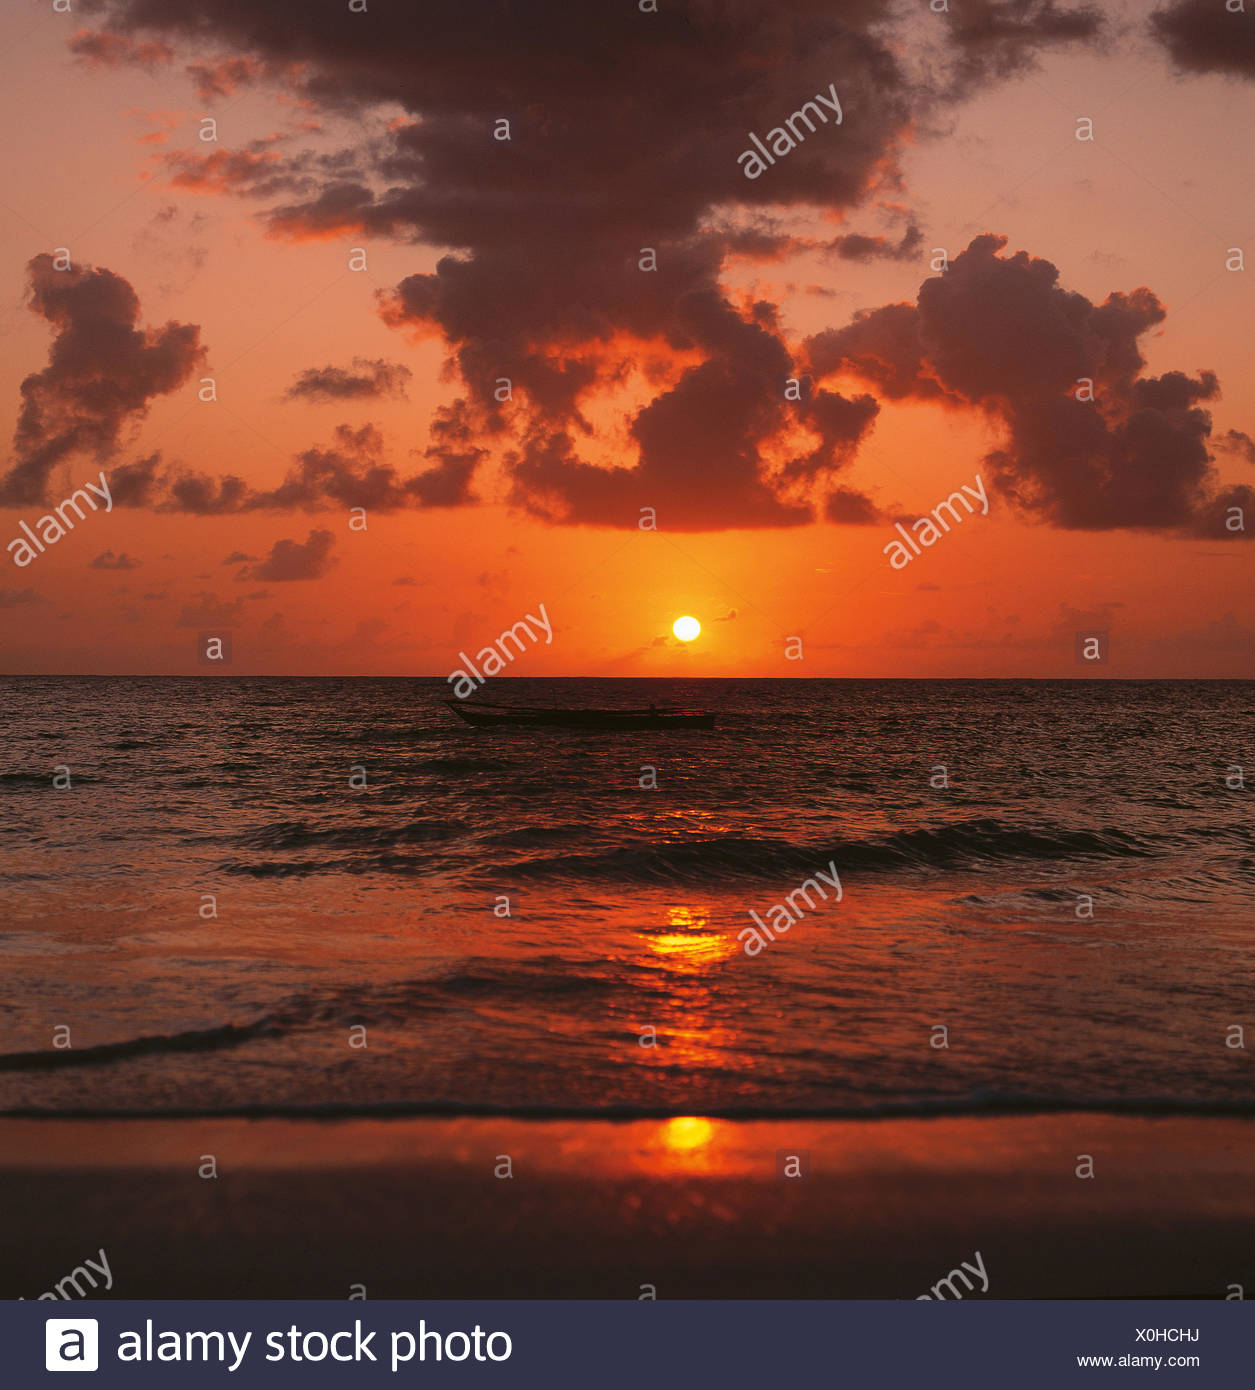 Sunset, Lake Malawi - Stock Image